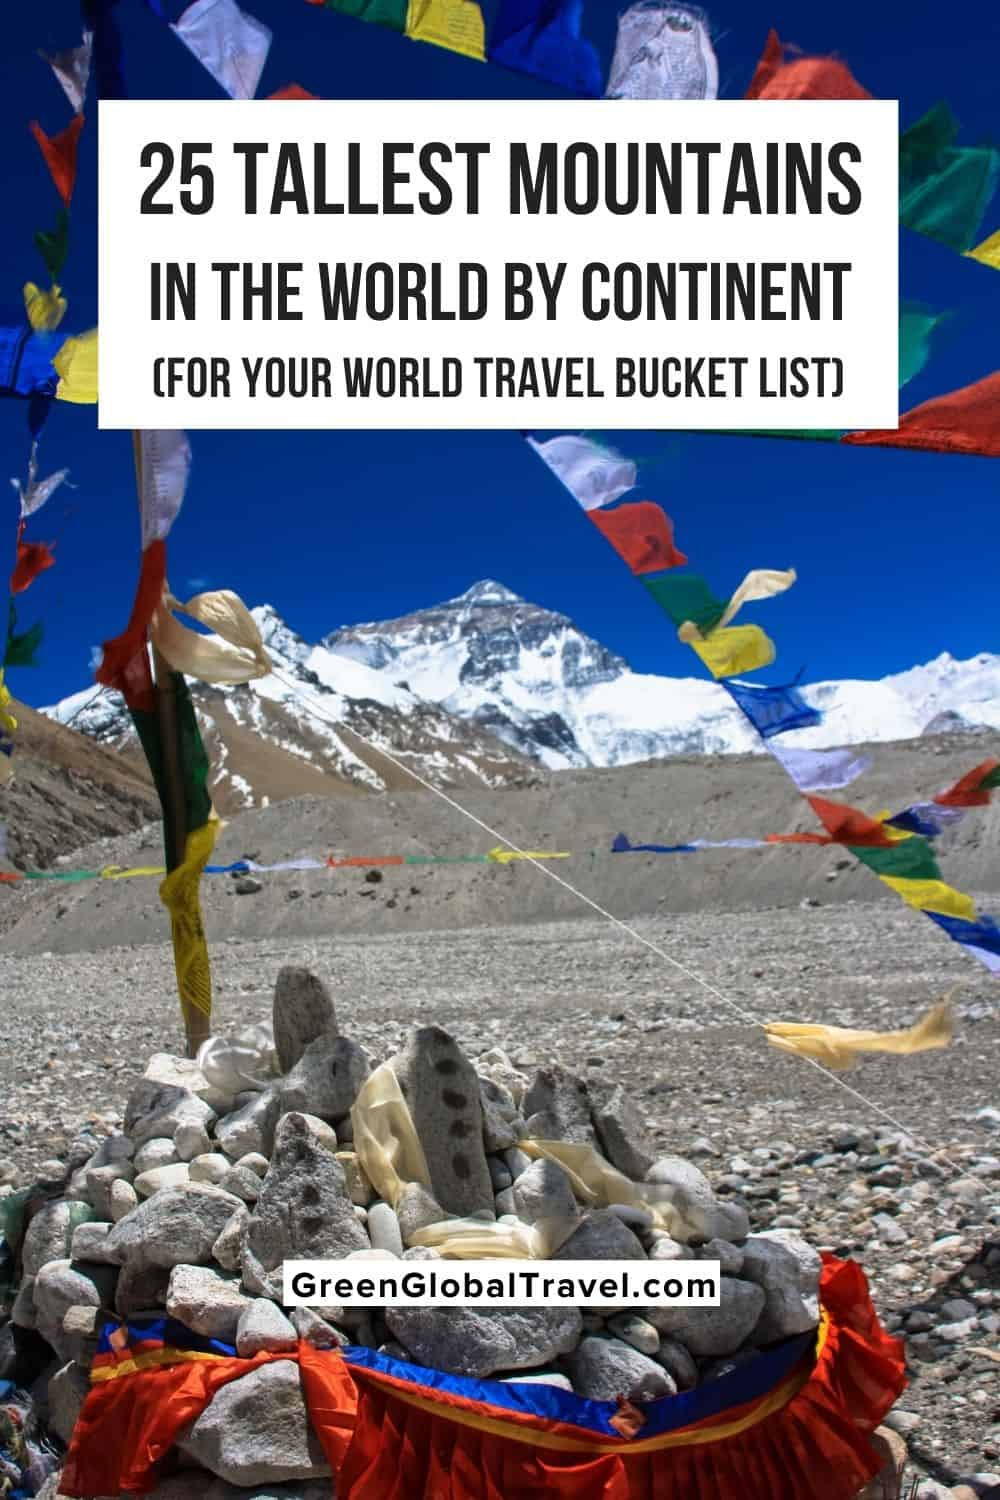 An overview of the 25 Tallest Mountains in the World, broken down by continent, including the famed Seven Summits and many of the Volcanic Seven Summits for your World Travel Bucket List.